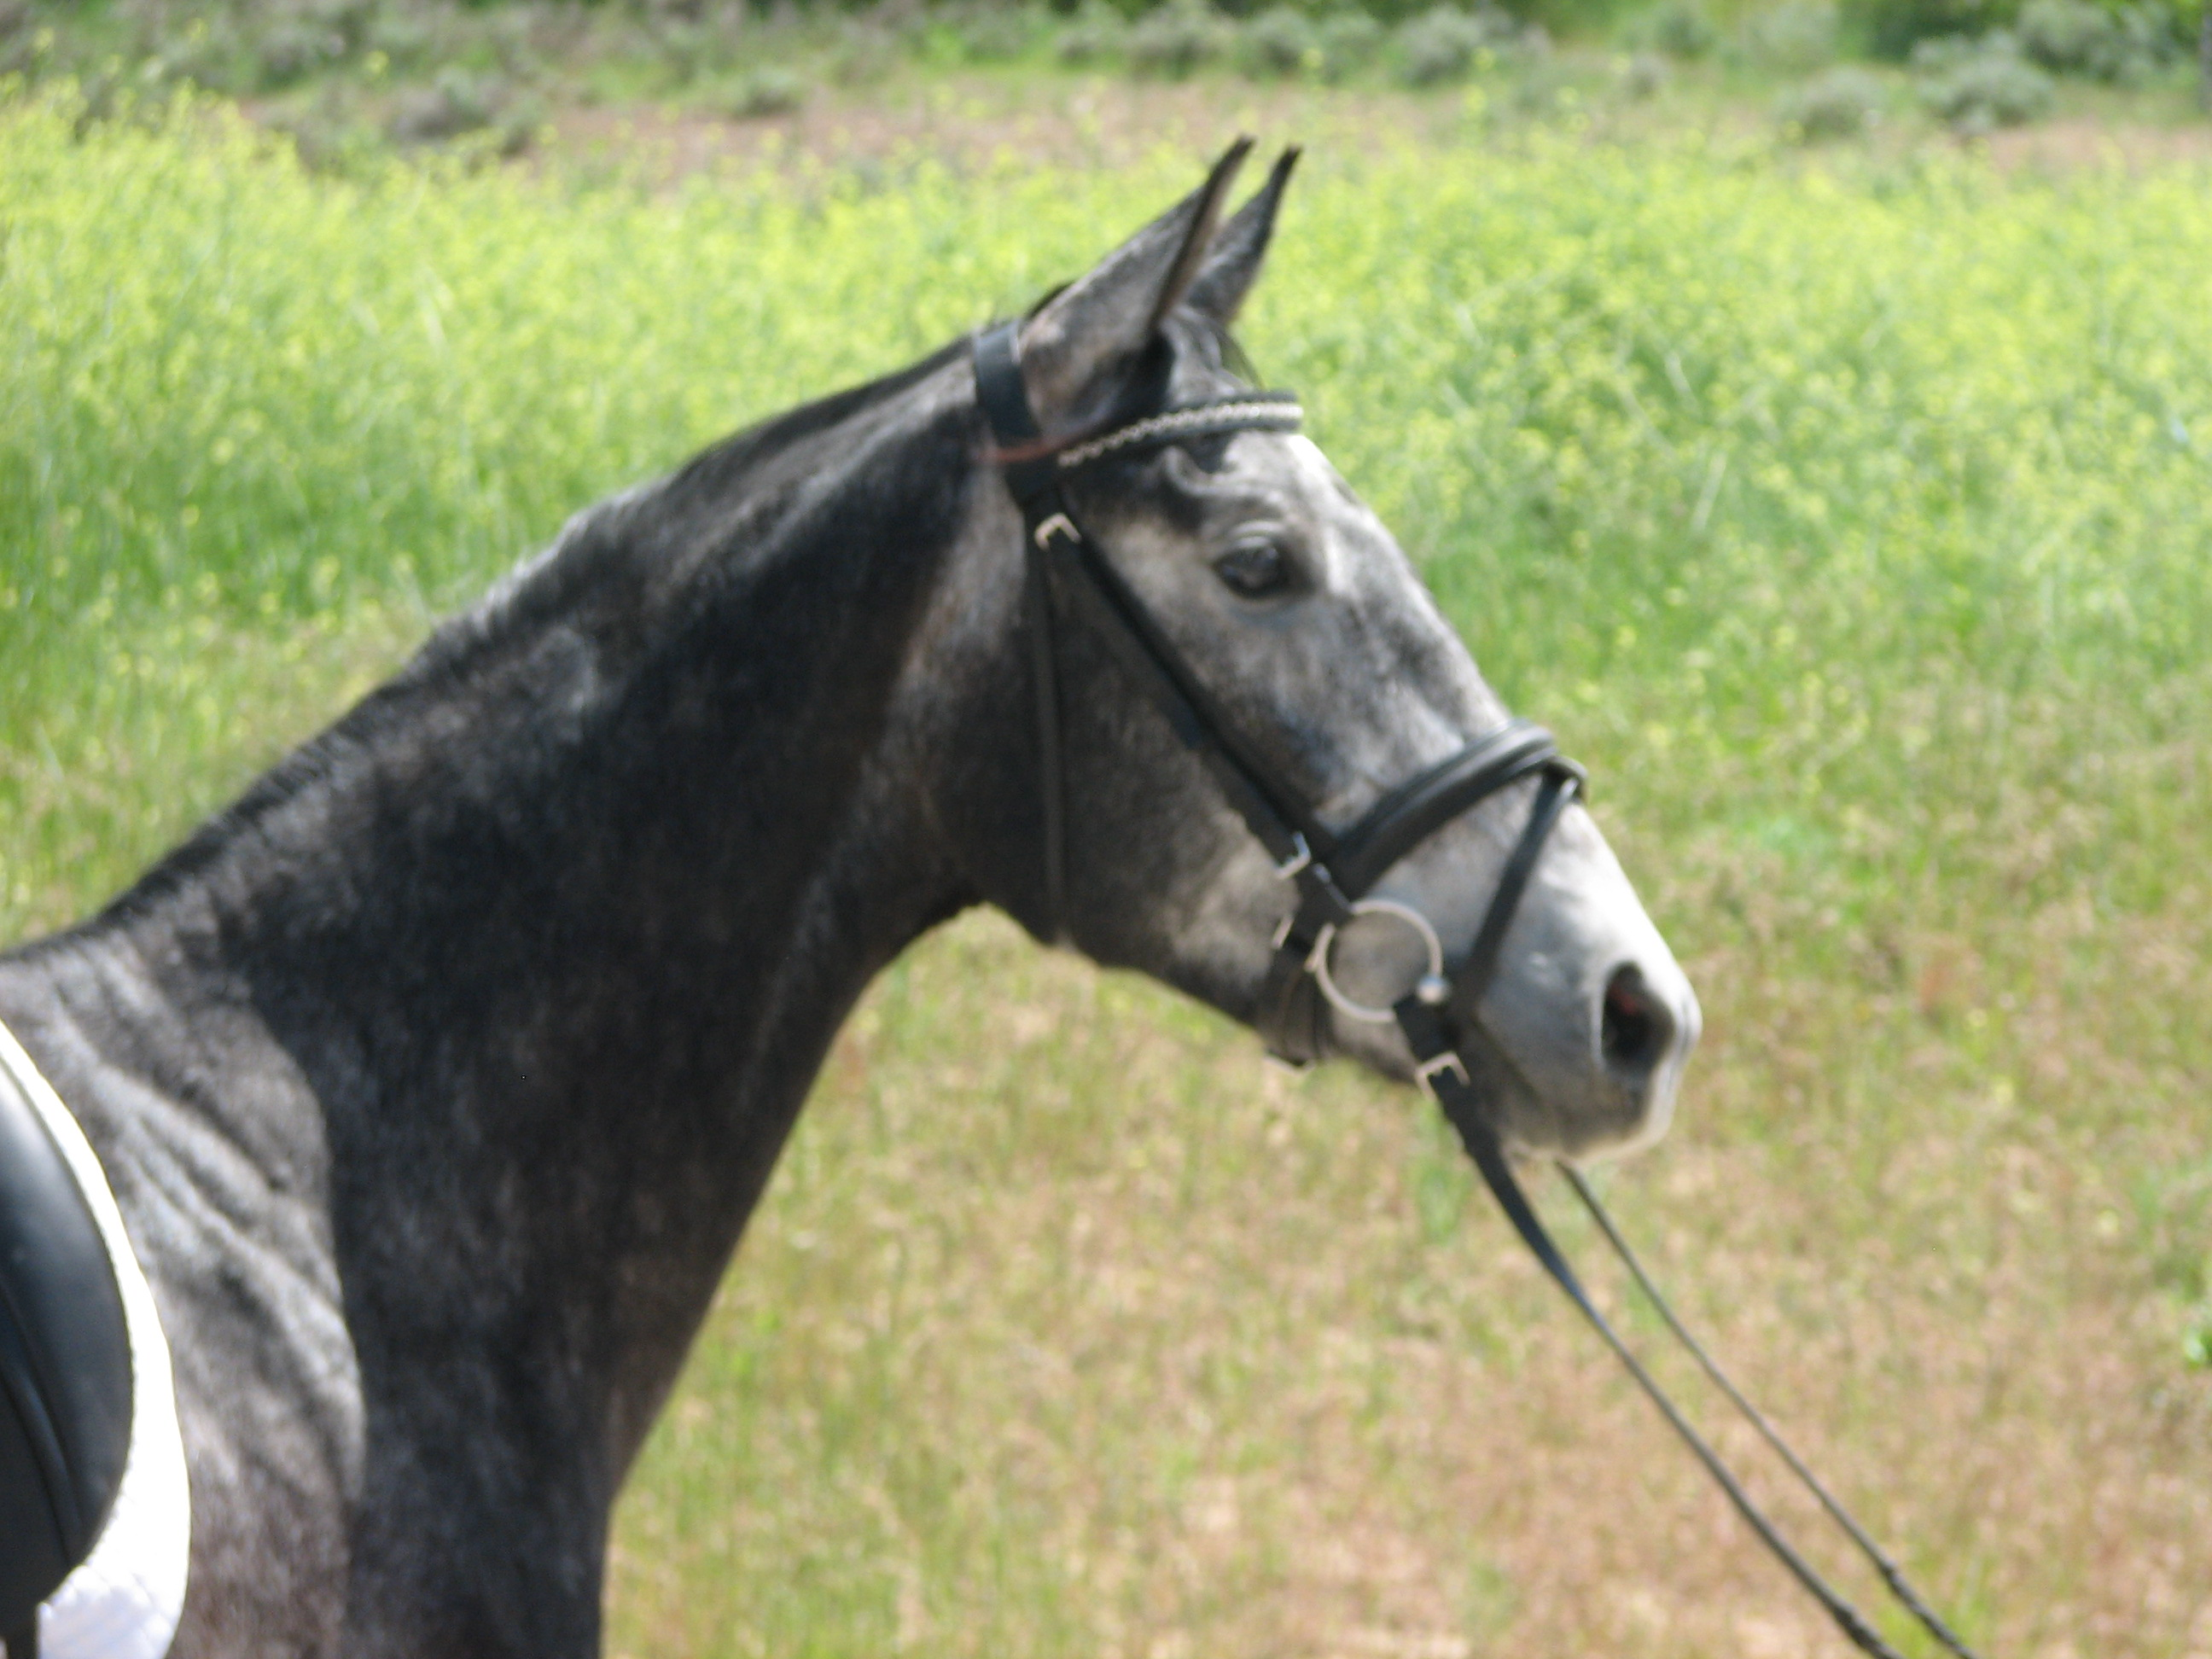 Dressage Prospect - Ready to show